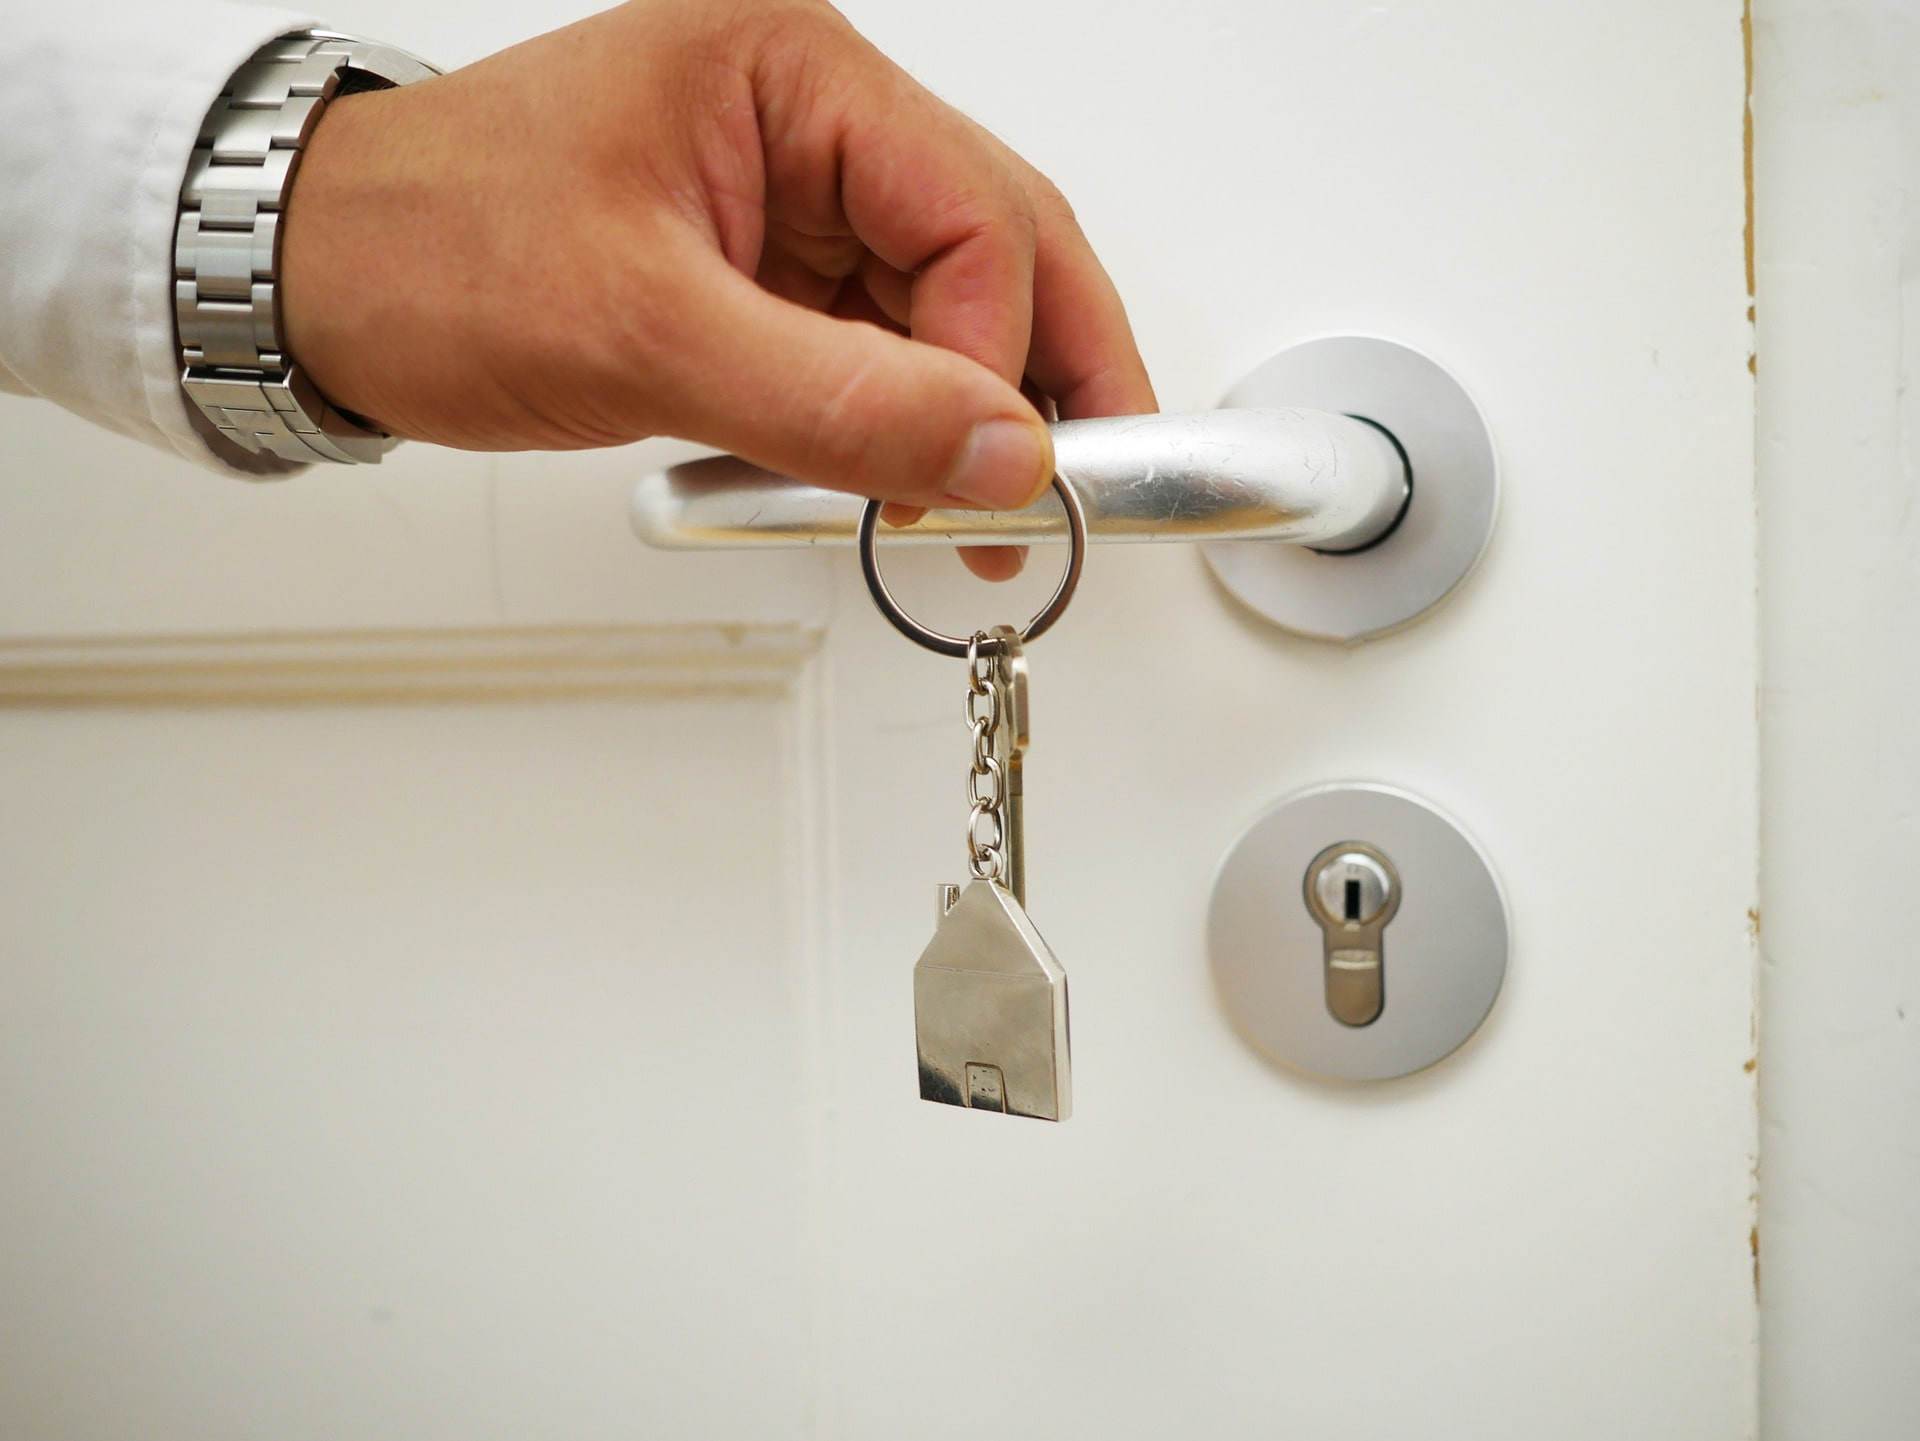 An image of the person holding the door with keychain